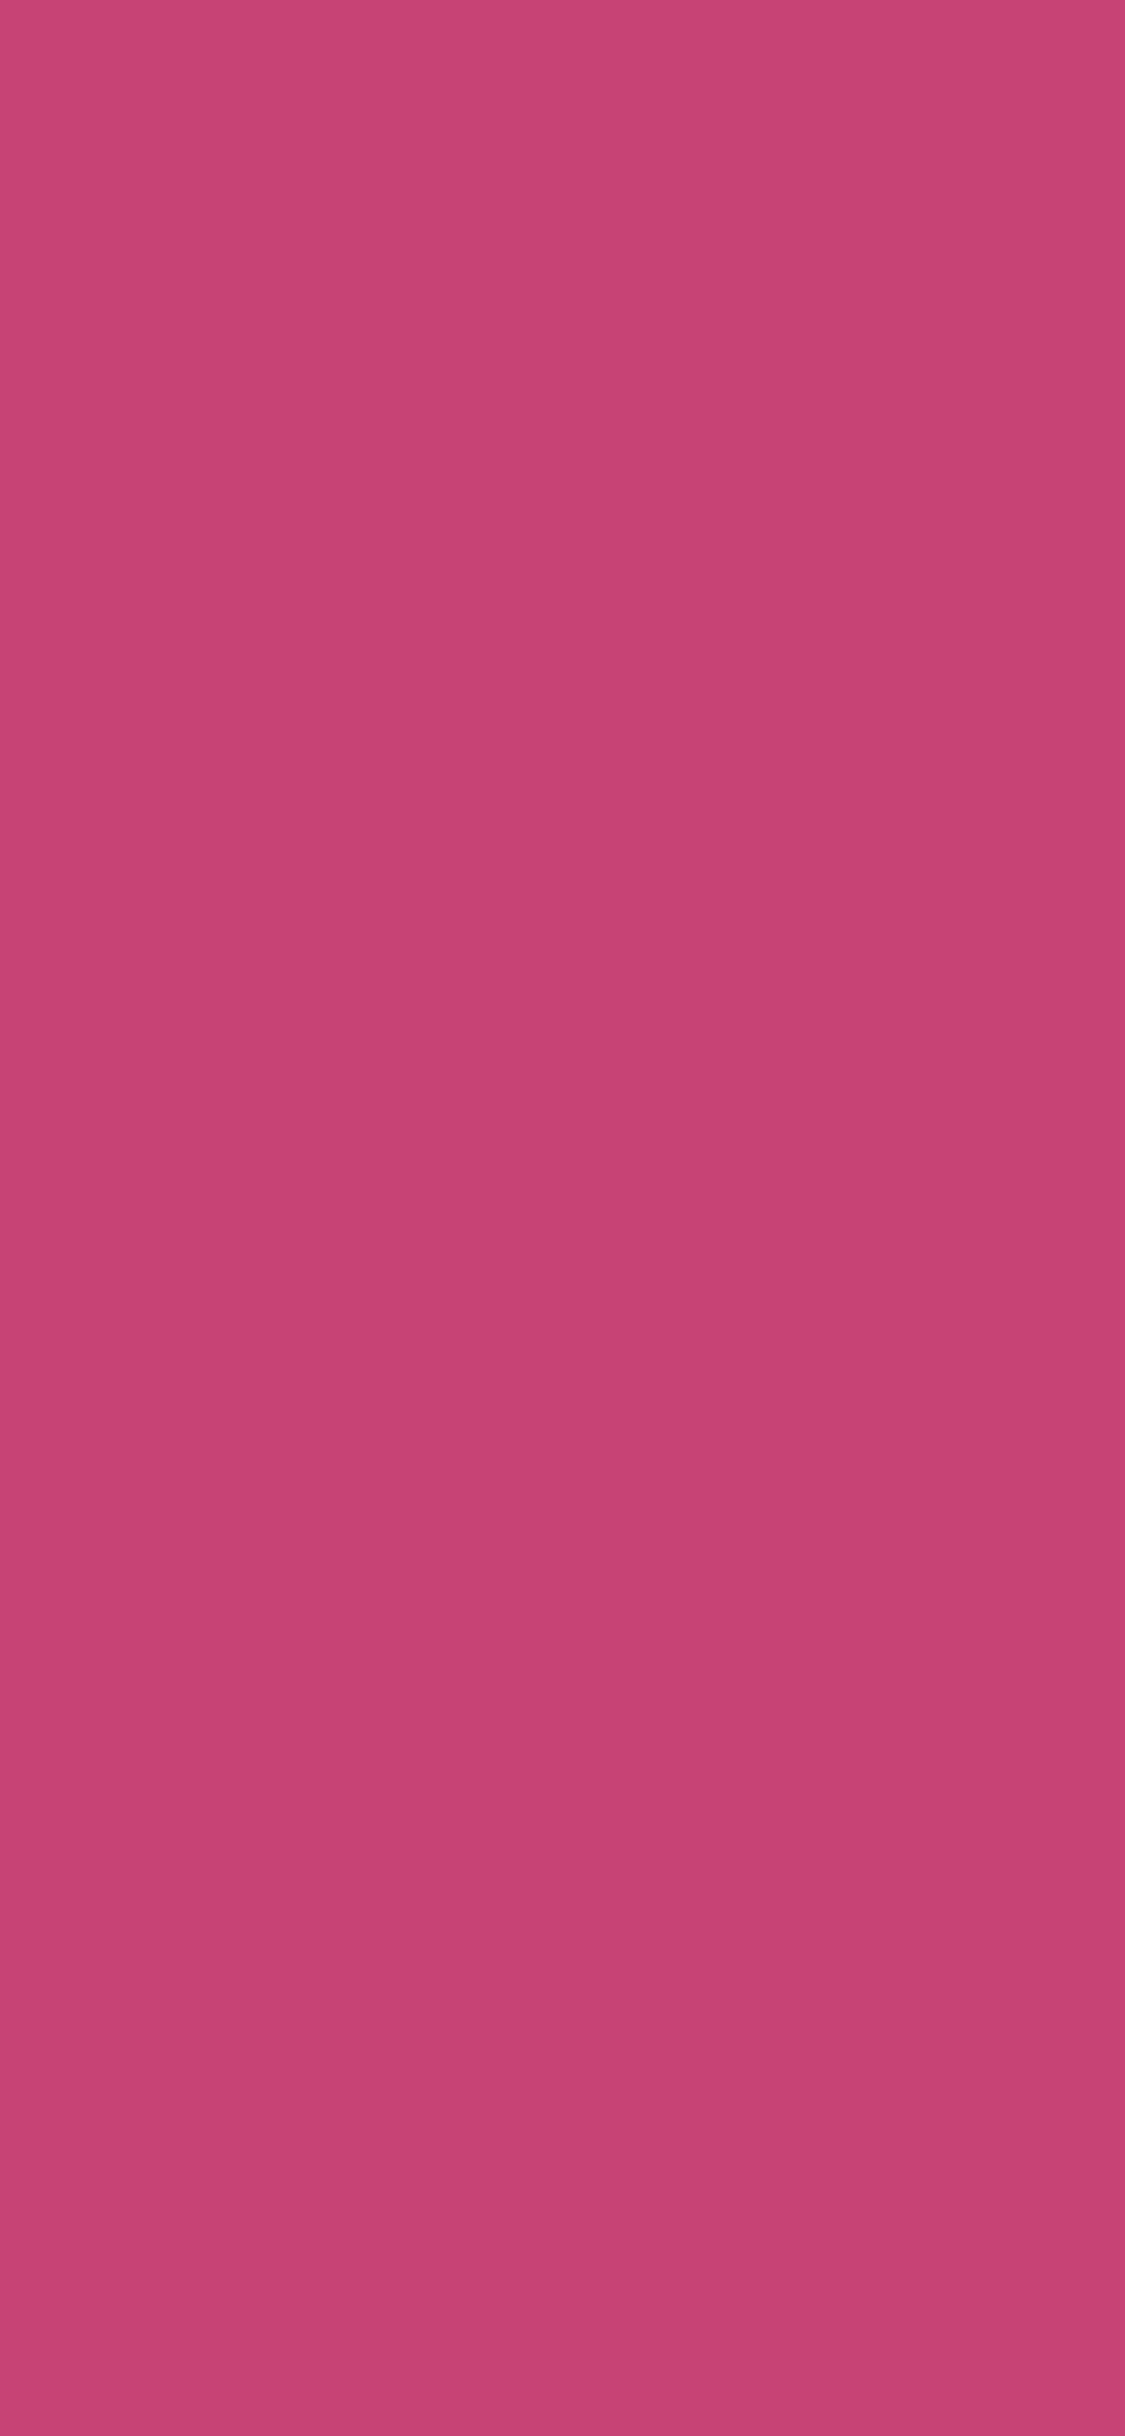 1125x2436 Fuchsia Rose Solid Color Background